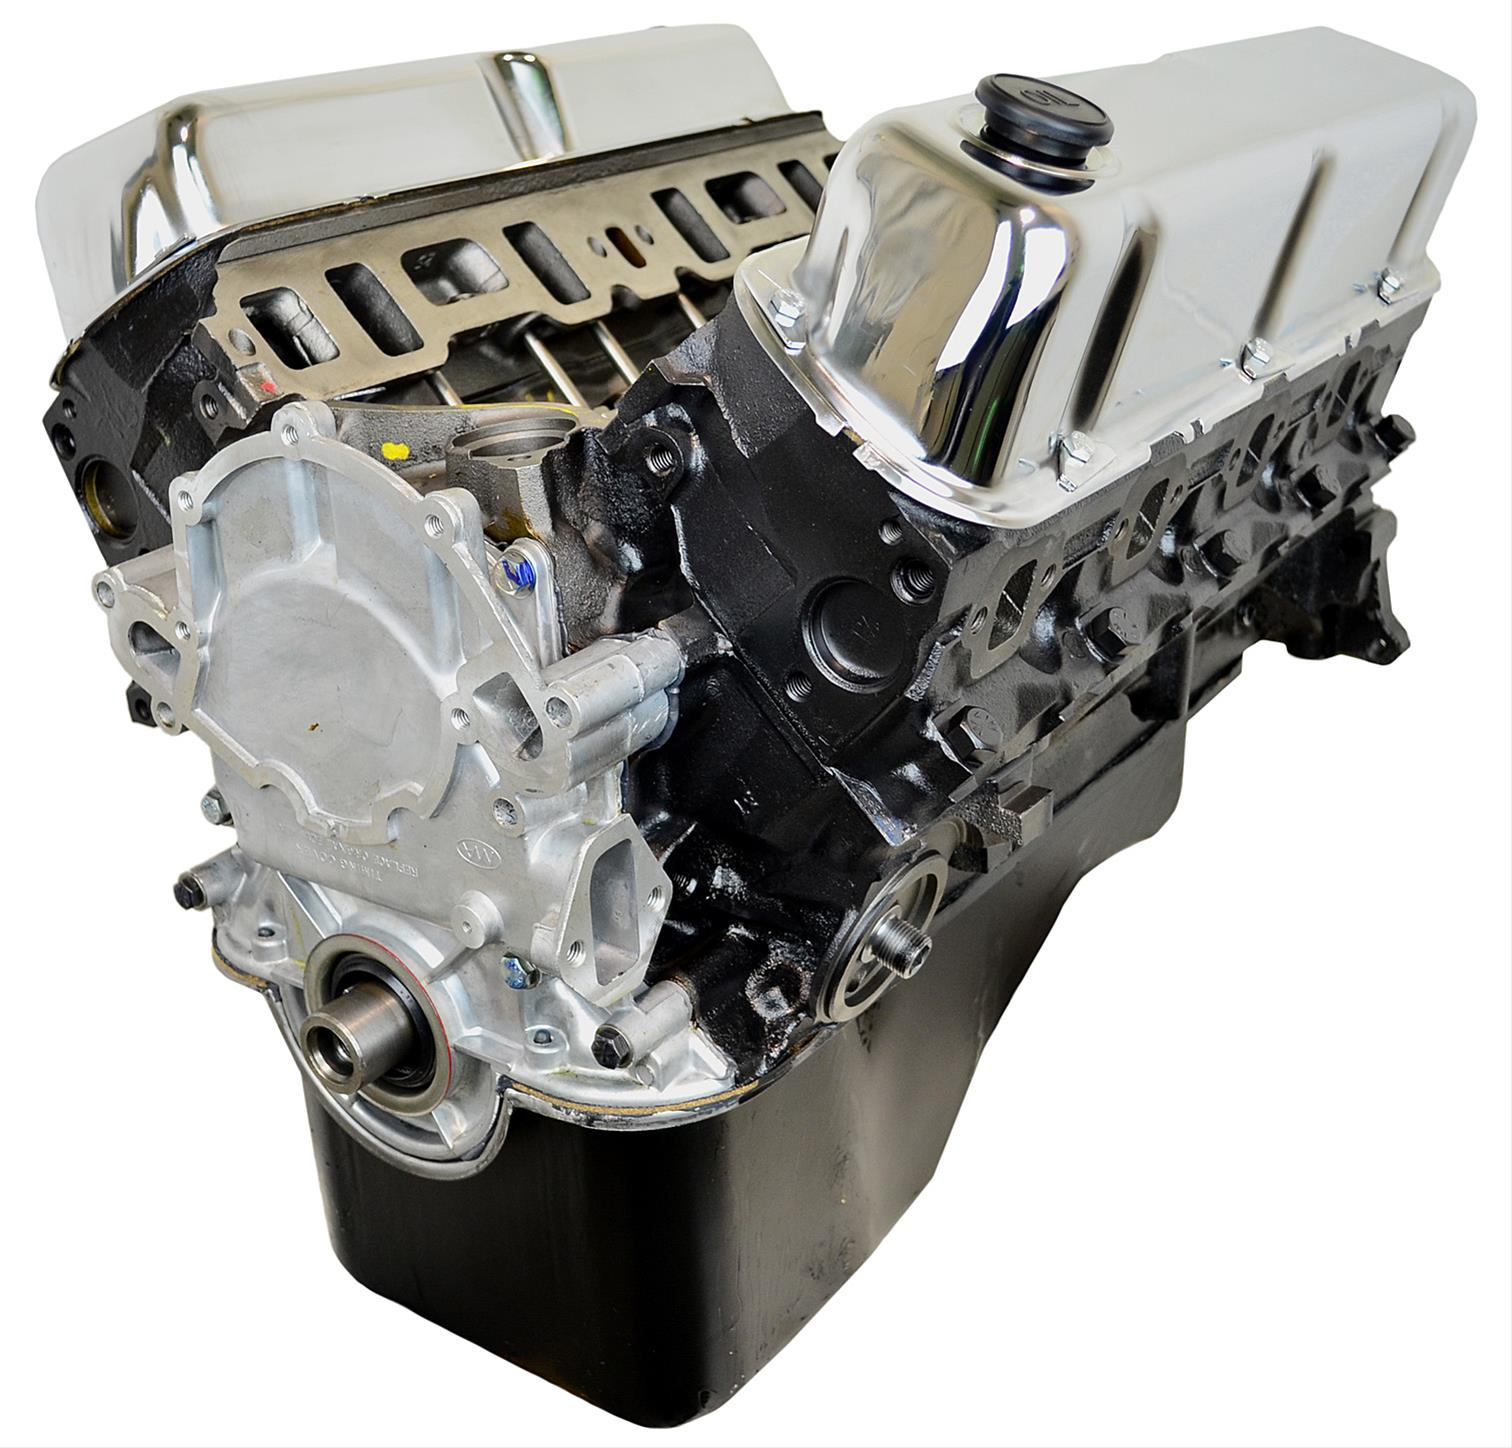 Atk high performance ford 302 300 hp stage 1 long block crate engines hp79 free shipping on orders over 99 at summit racing